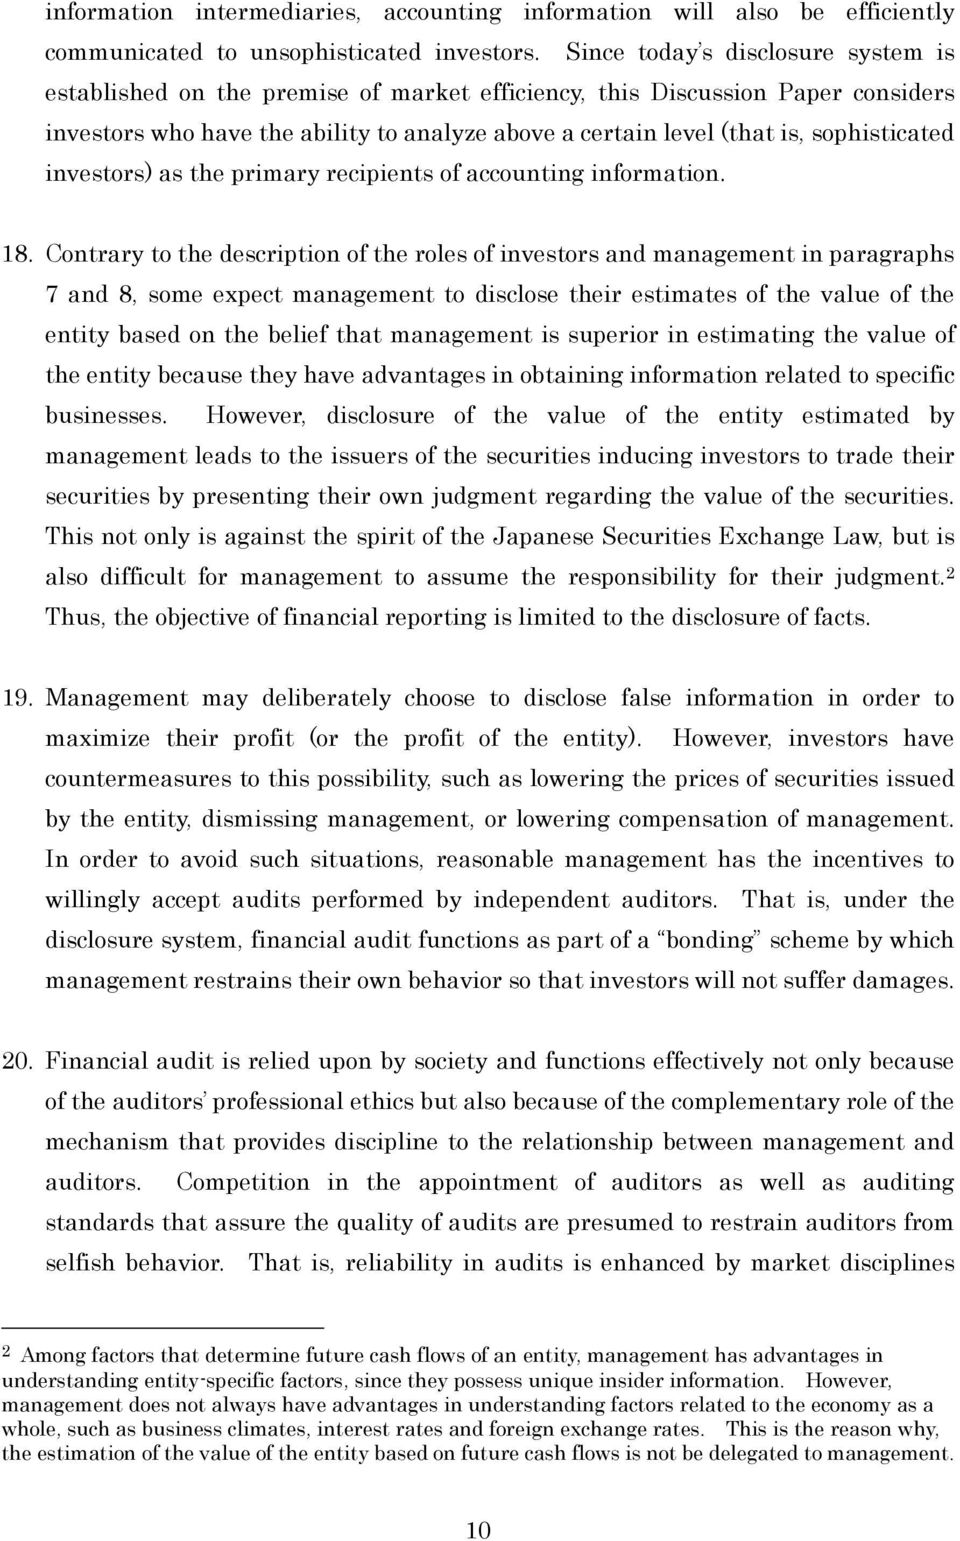 sophisticated investors) as the primary recipients of accounting information. 18.